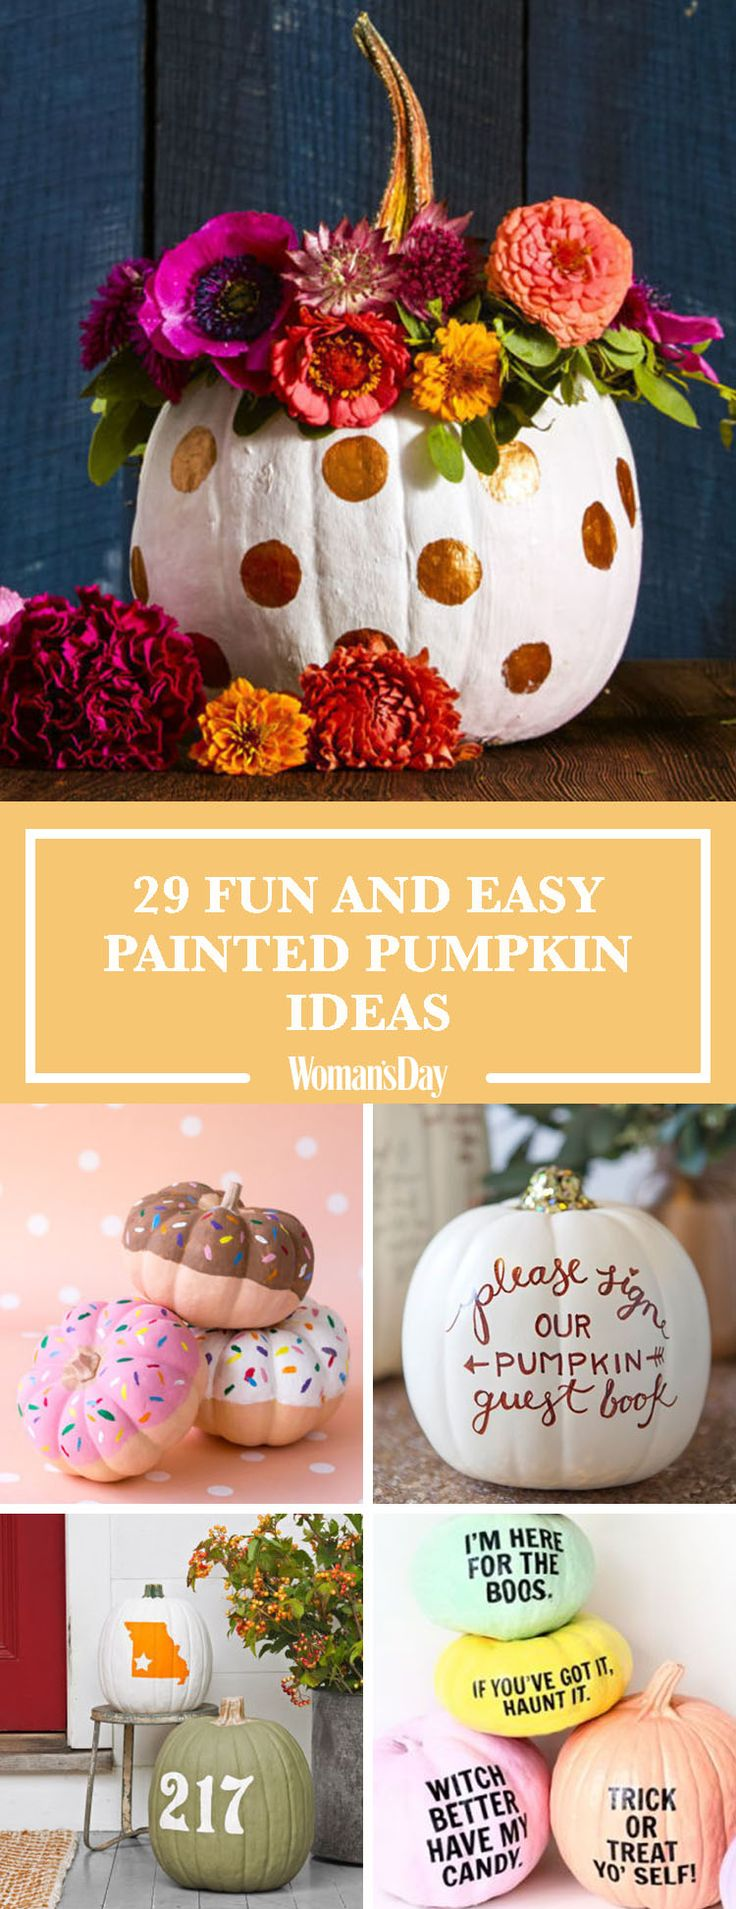 Food faith amp design thanksgiving goodies - 34 Fun Painted Pumpkin Ideas For The Best Ever Halloween